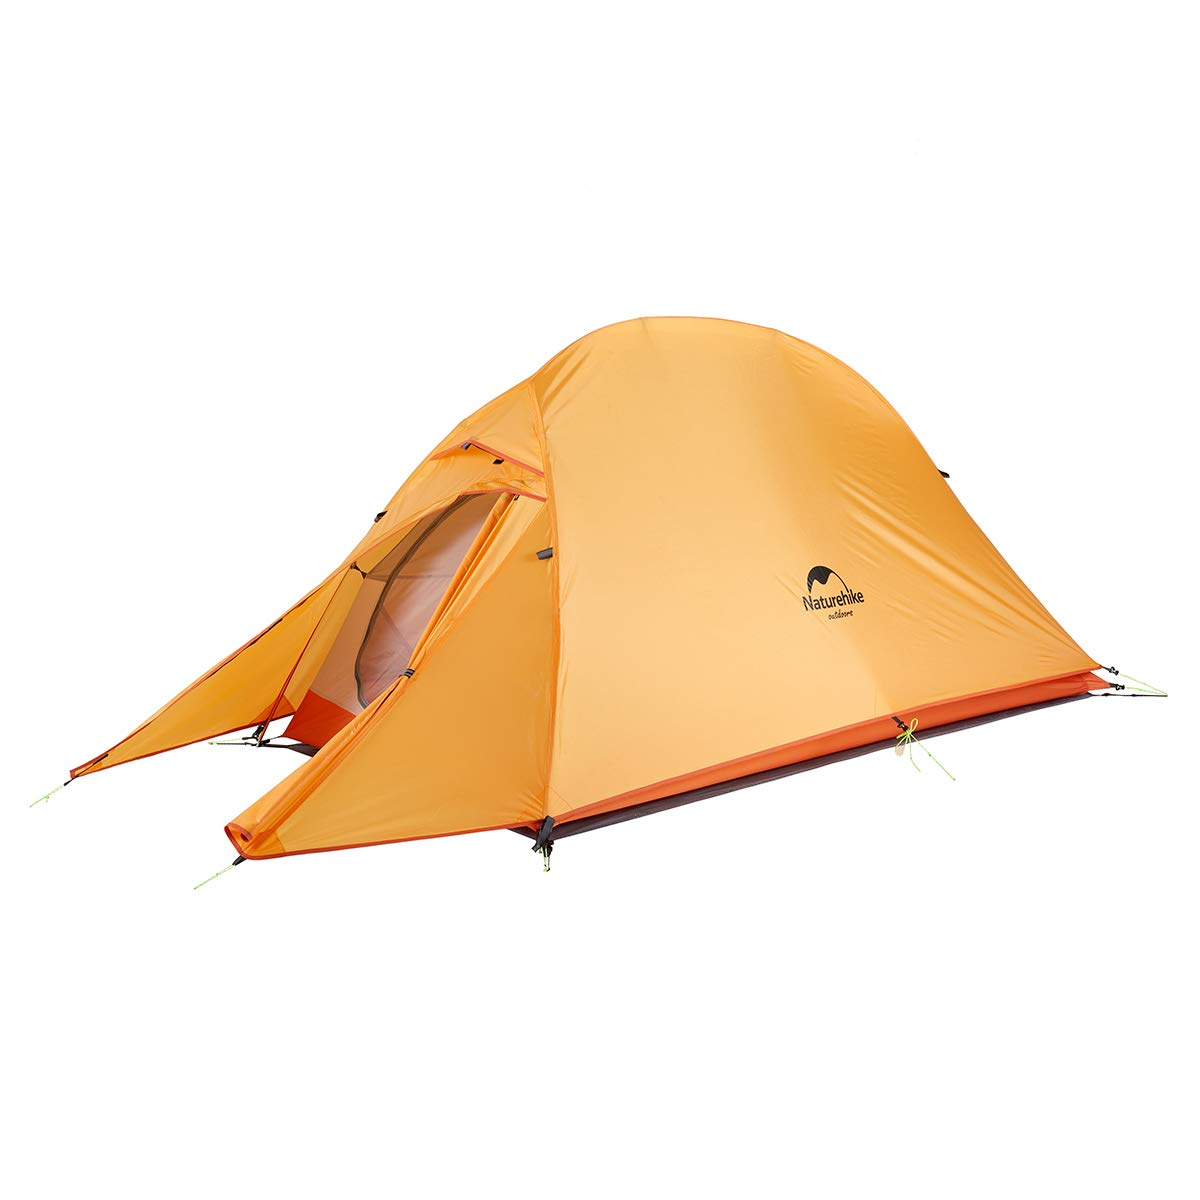 Naturehike Cloud-Up 1, 2 and 3 Person Lightweight Backpacking Tent with Footprint - 4 Season Free Standing Dome Camping Hiking Waterproof Backpack Tents (1P-Orange) by Naturehike